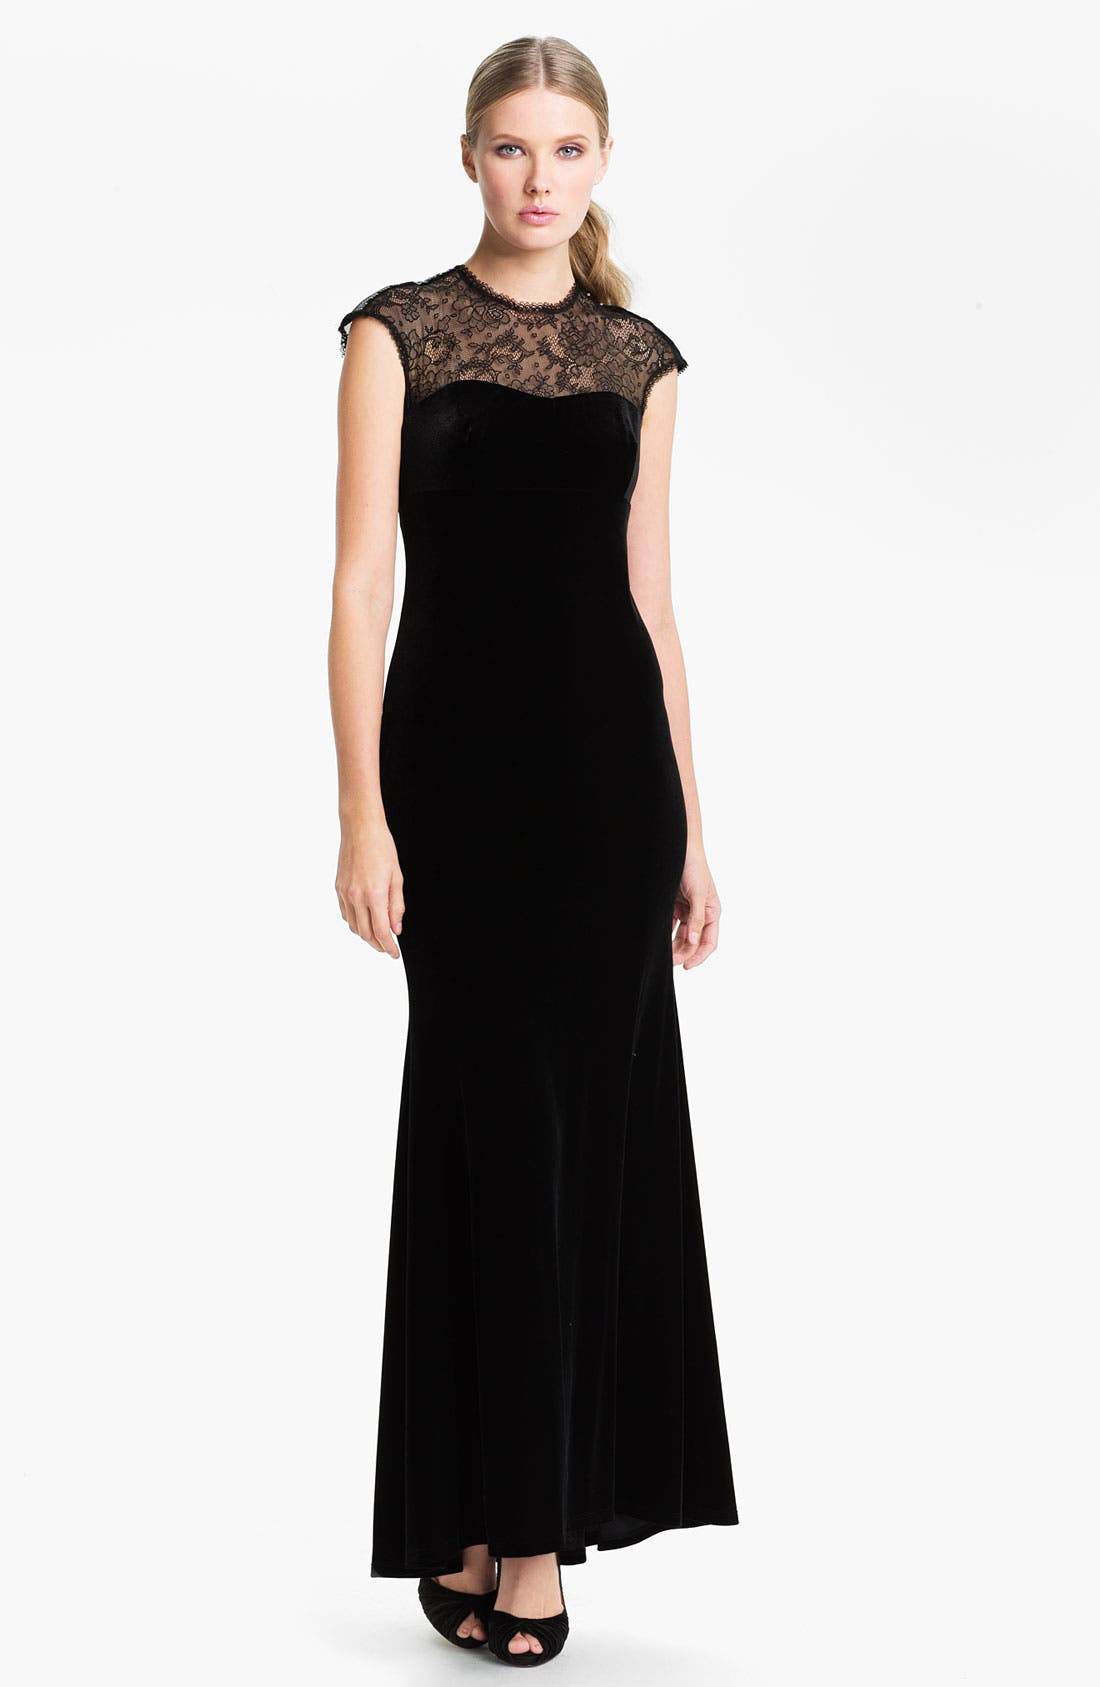 Alternate Image 1 Selected - Jessica McClintock Lace Yoke Velvet Trumpet Gown